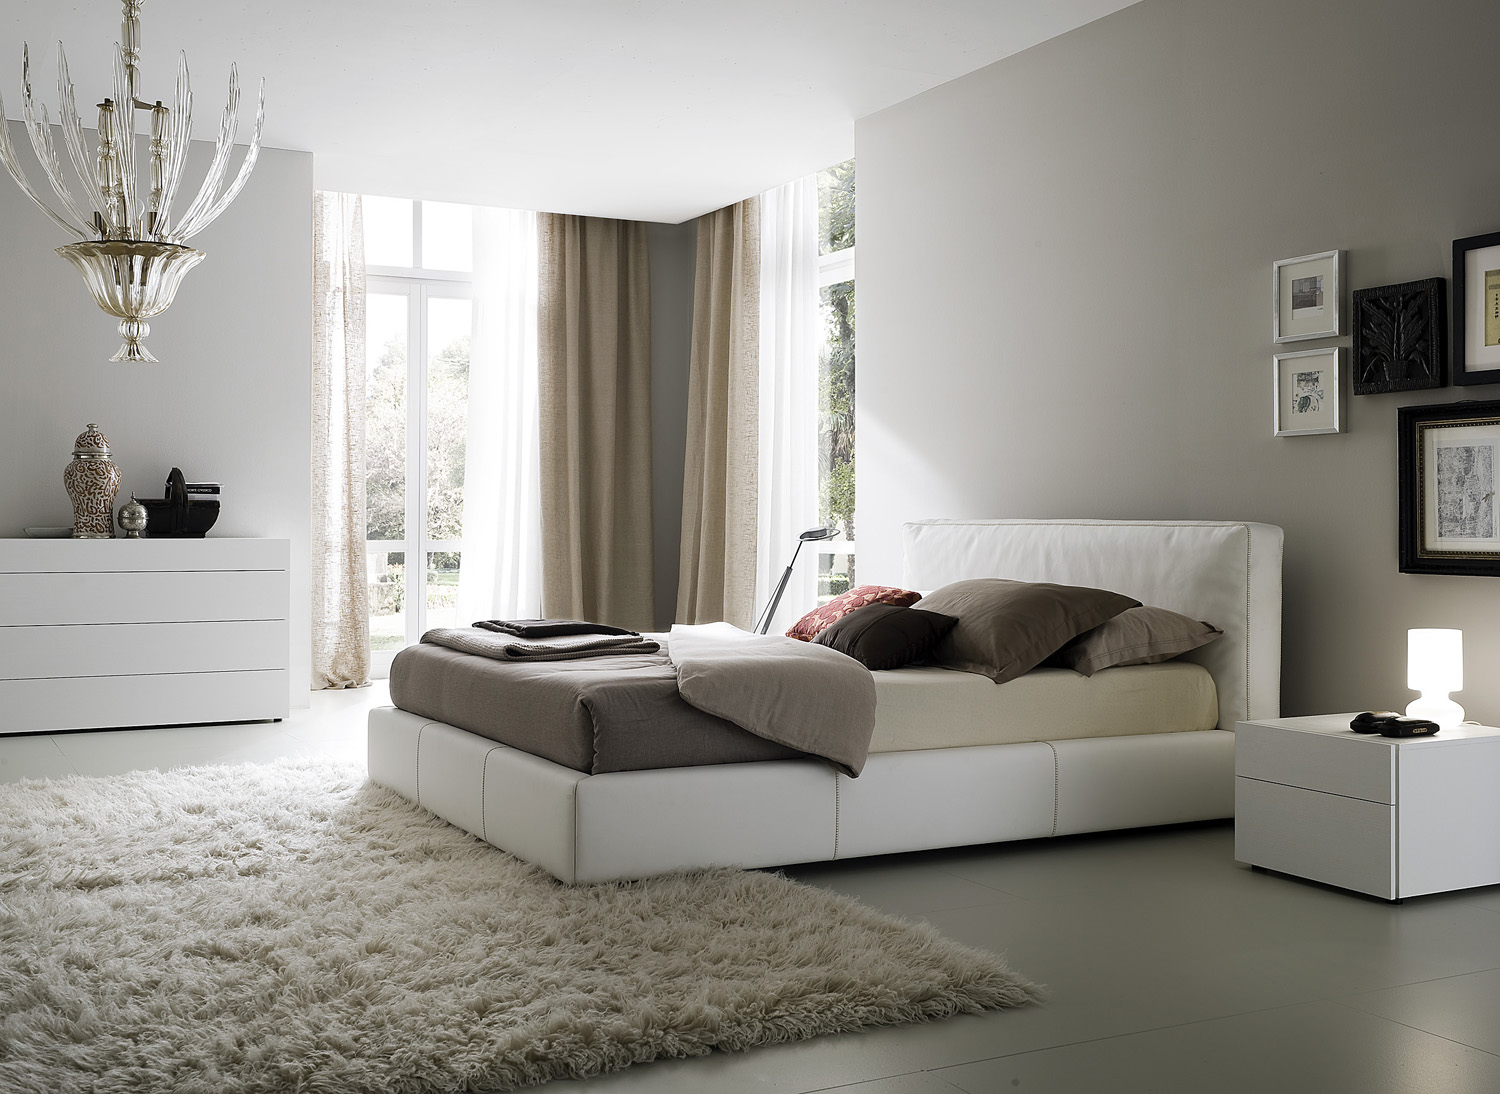 Bedroom decorating ideas from evinco for Apartment bedroom design ideas